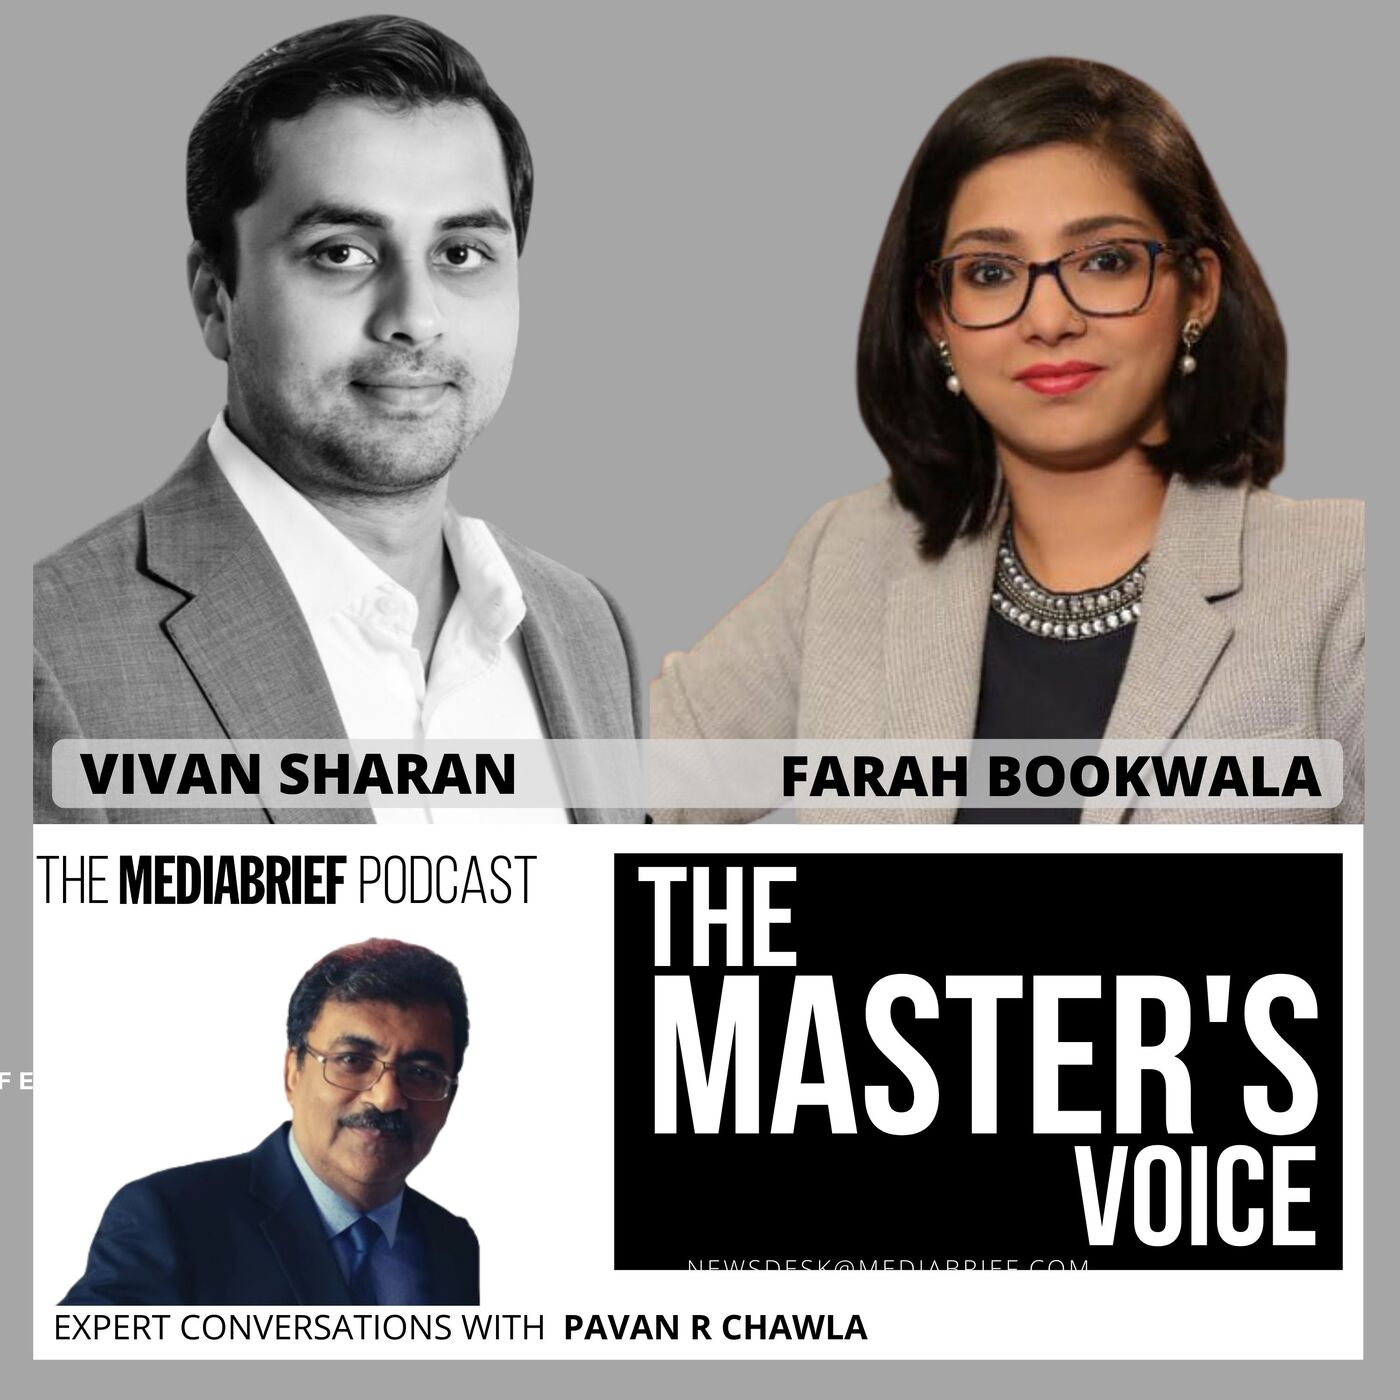 BODY BLOWS TO TELEVISION BROADCAST IN INDIA: Vivan Sharan and Farha Bookwala on The Master's Voice